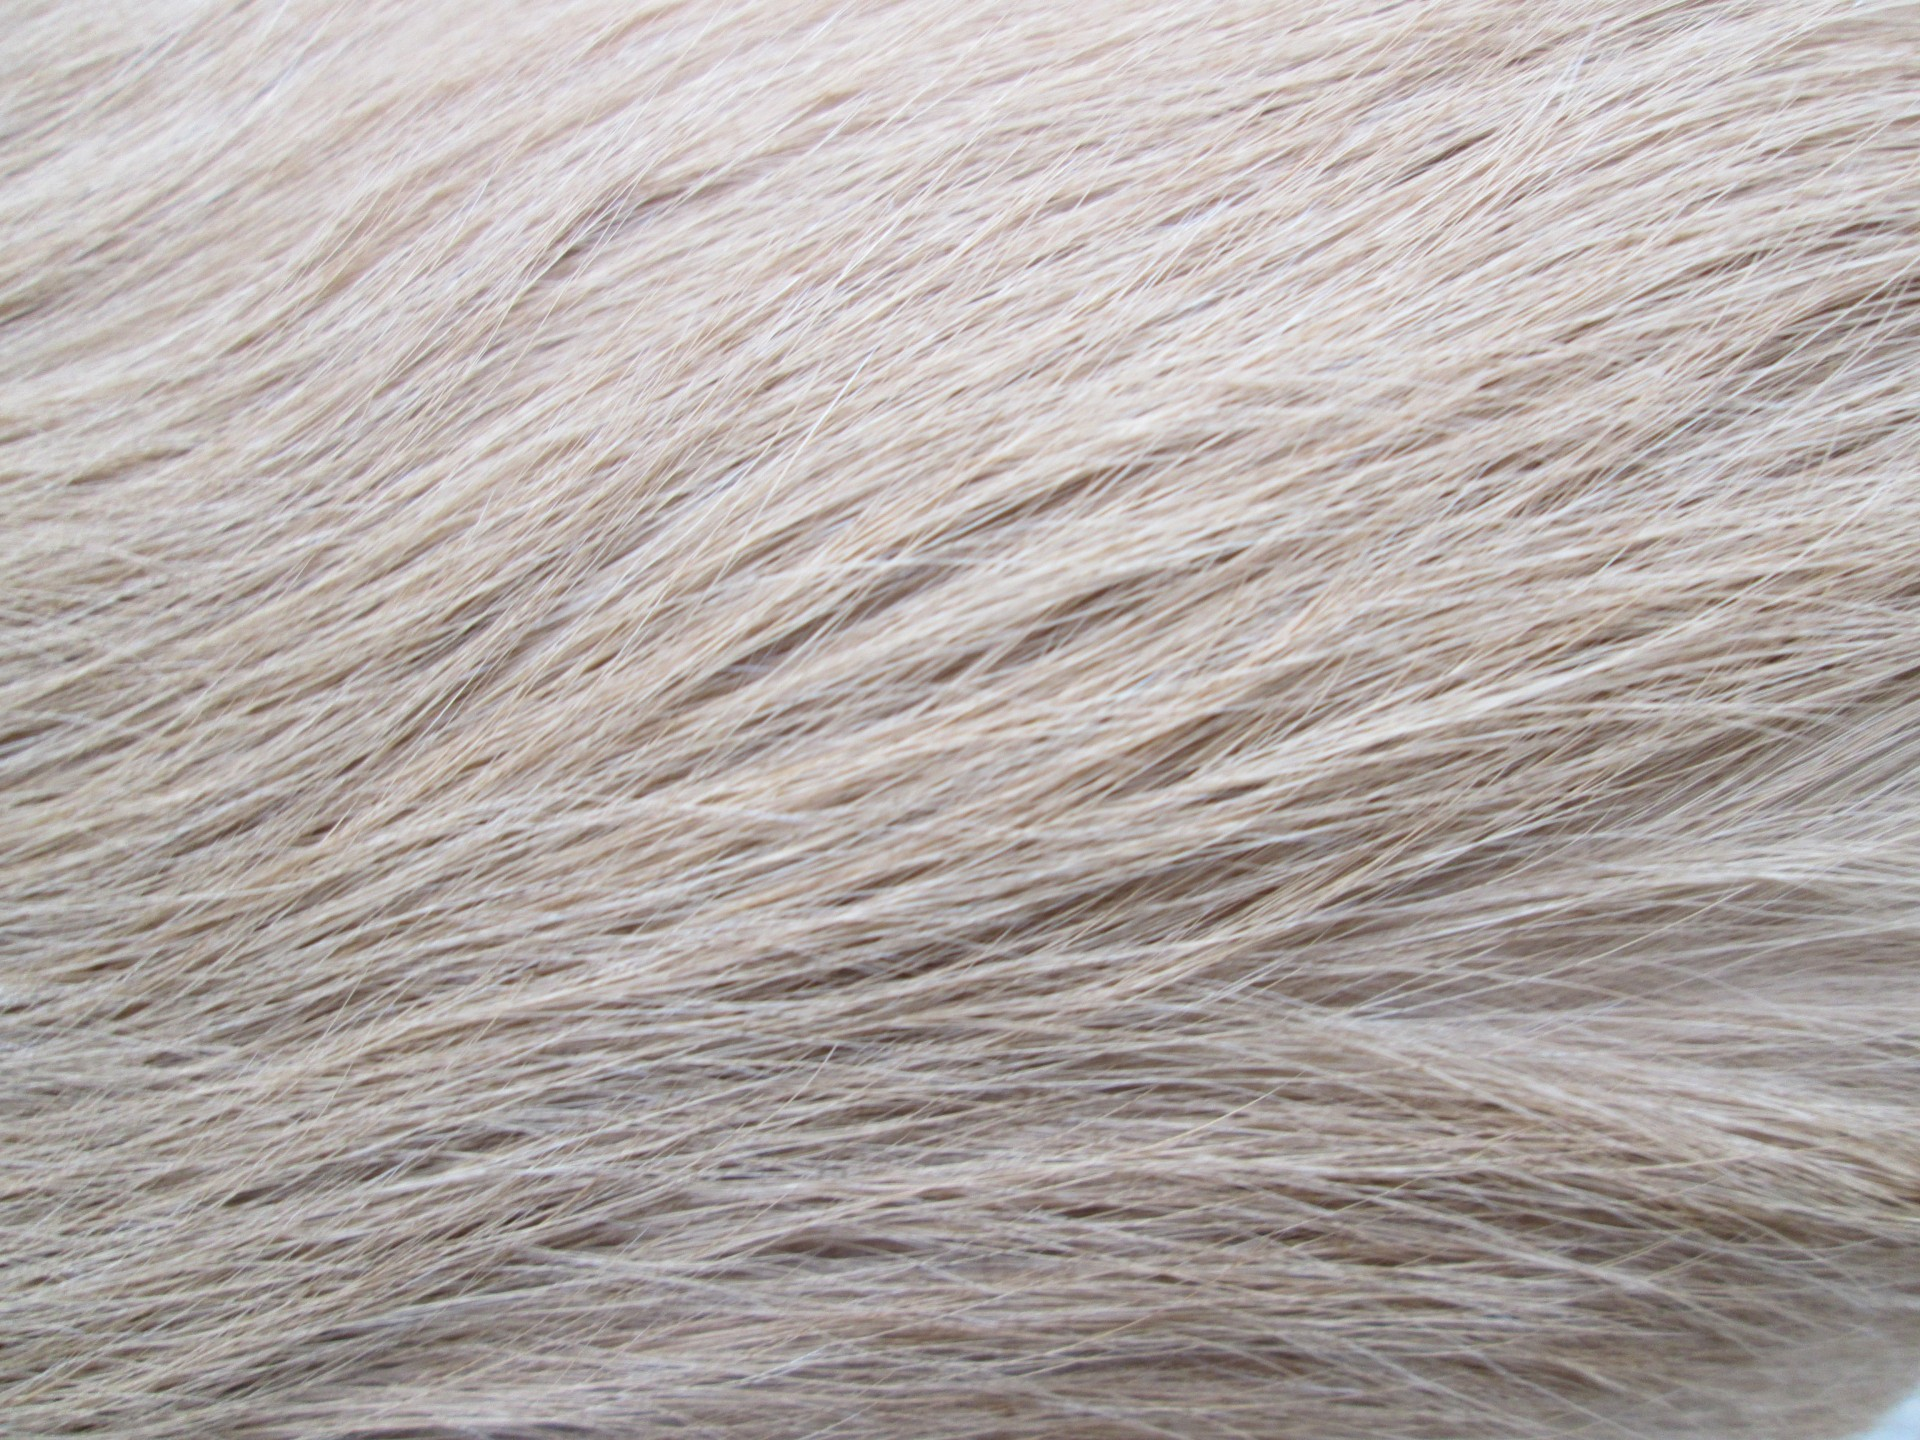 Free Animal Wallpaper Download Dog Fur Texture Free Stock Photo Public Domain Pictures